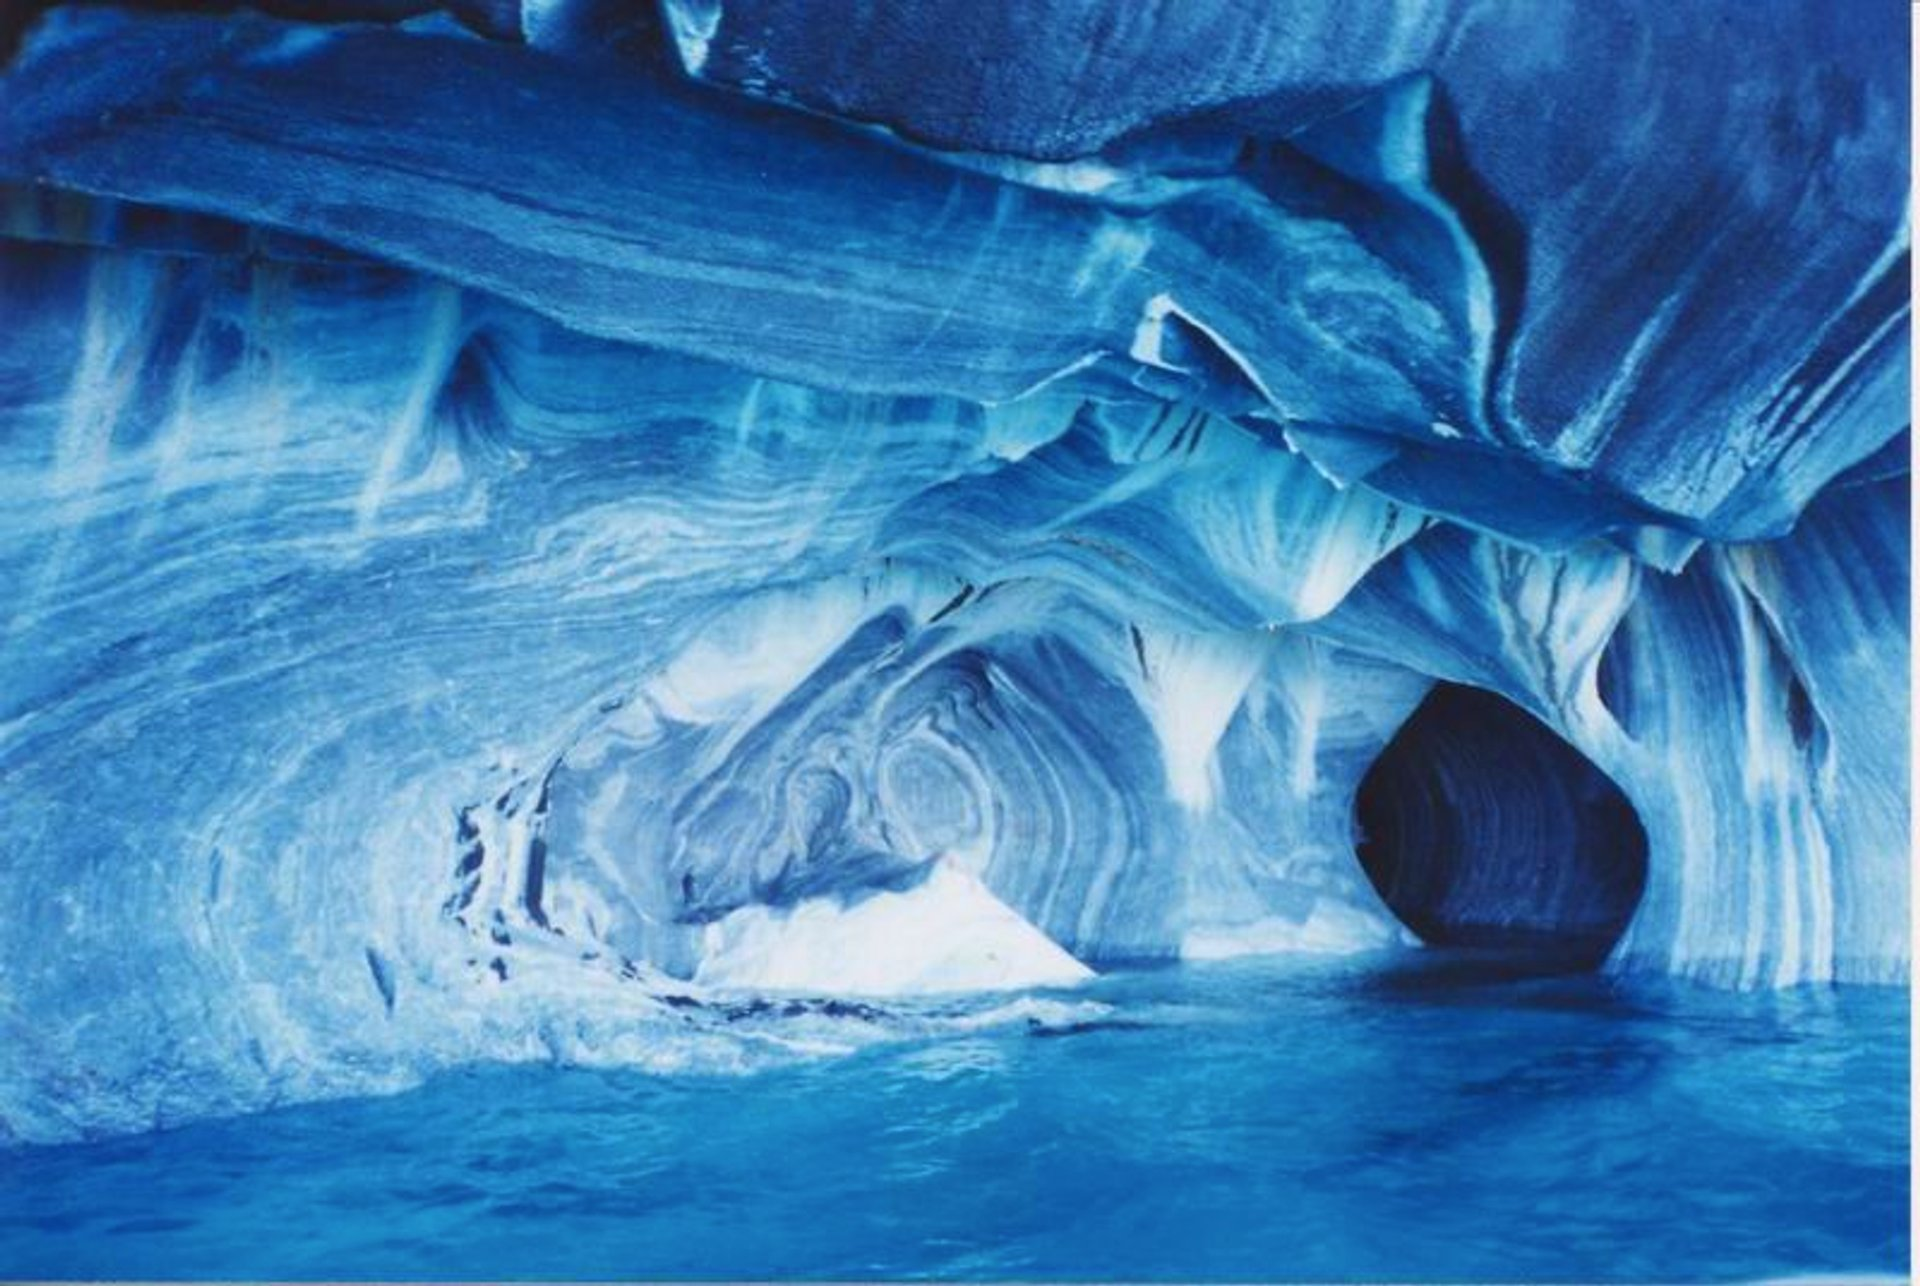 Marble Caves or Cuevas de Mármol in Chile - Best Season 2020